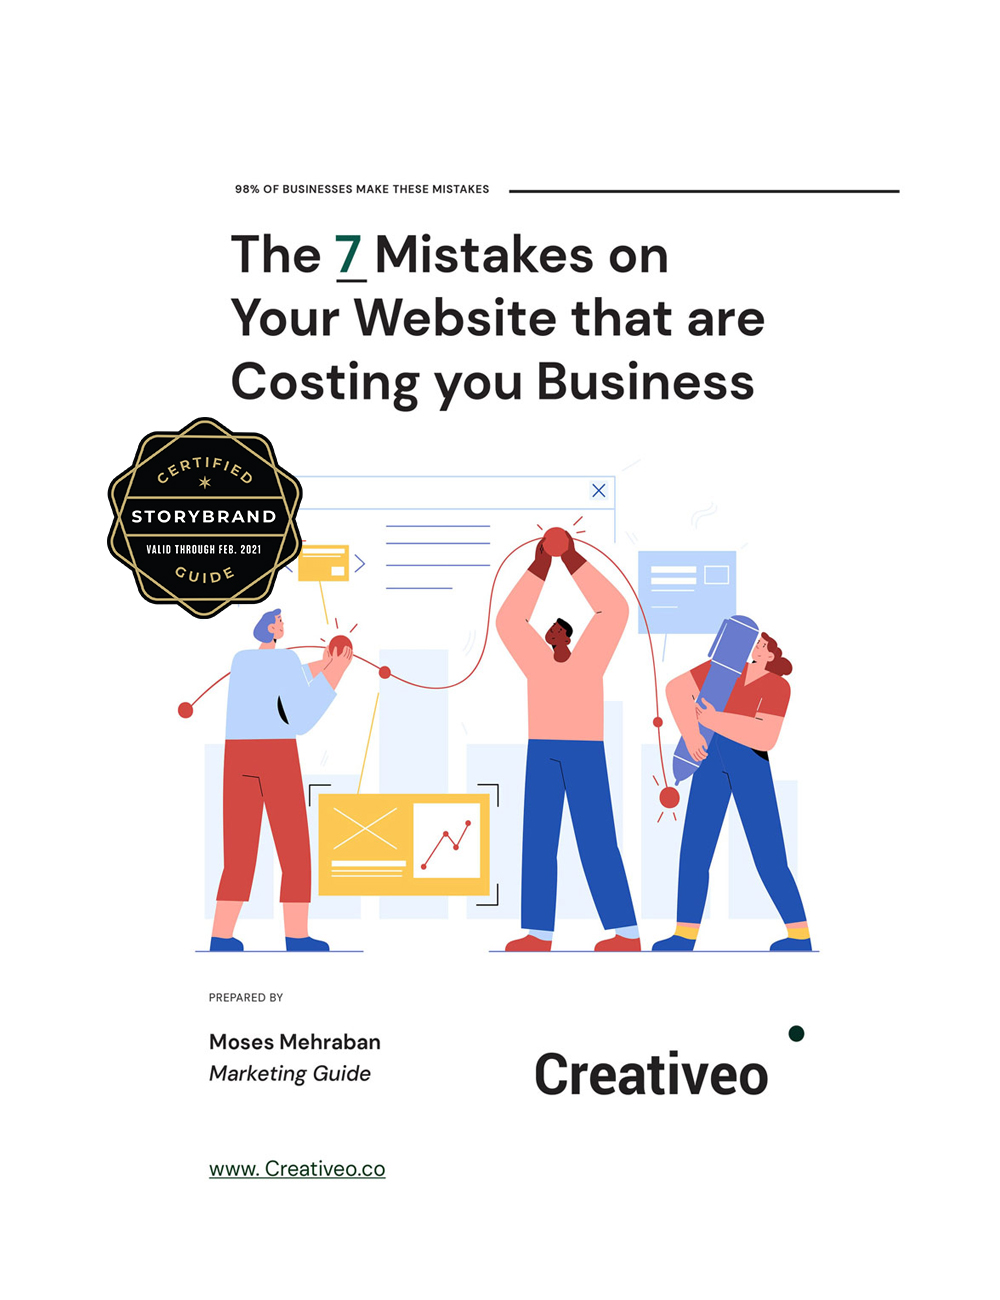 Free PDF - the 7 Mistakes on your website that are costing you business